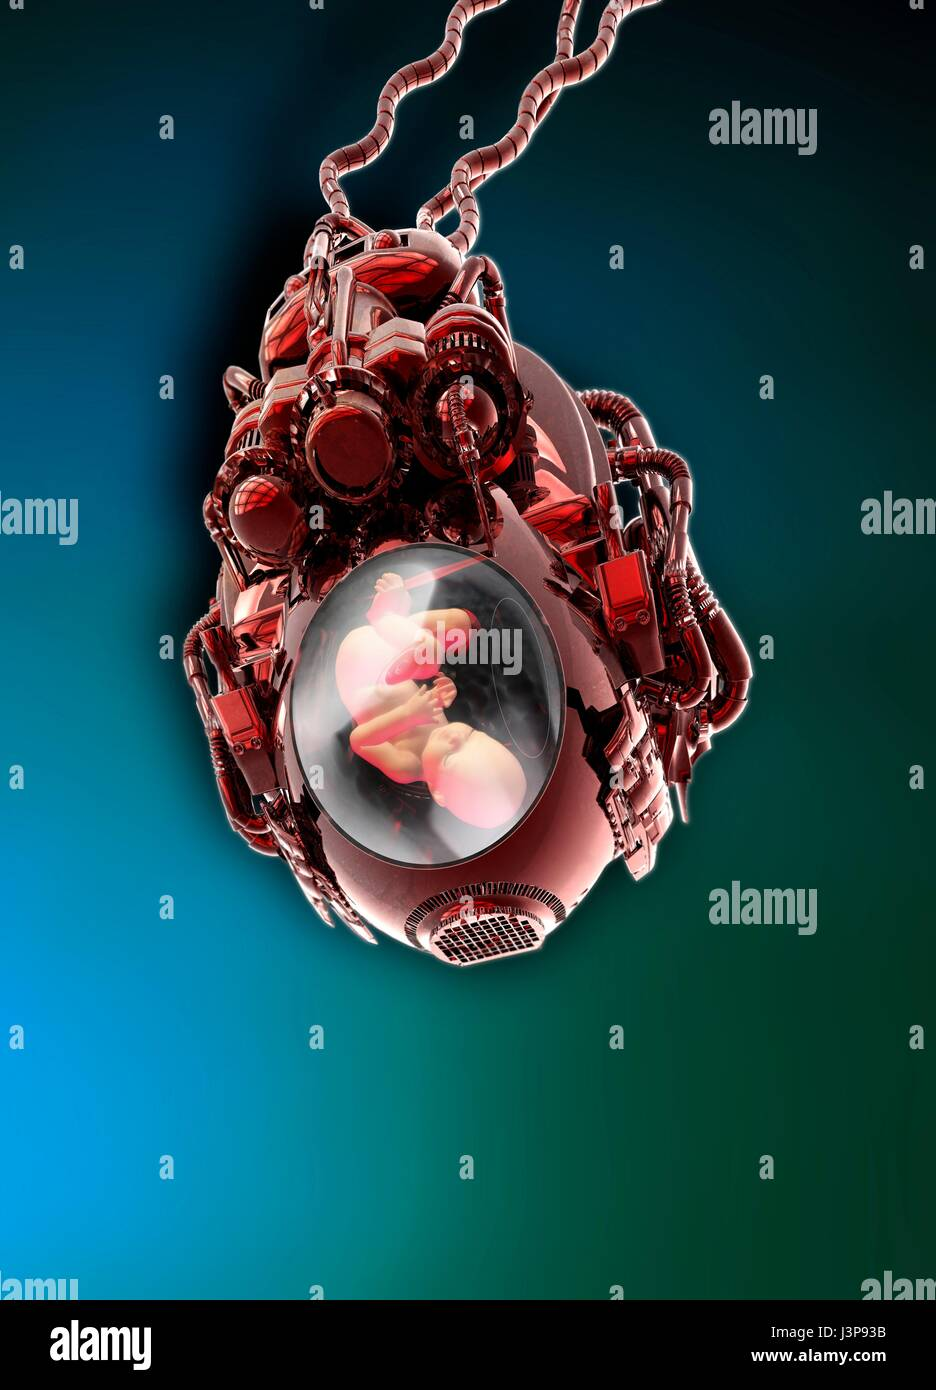 Artificial womb with human embryo, illustration. - Stock Image